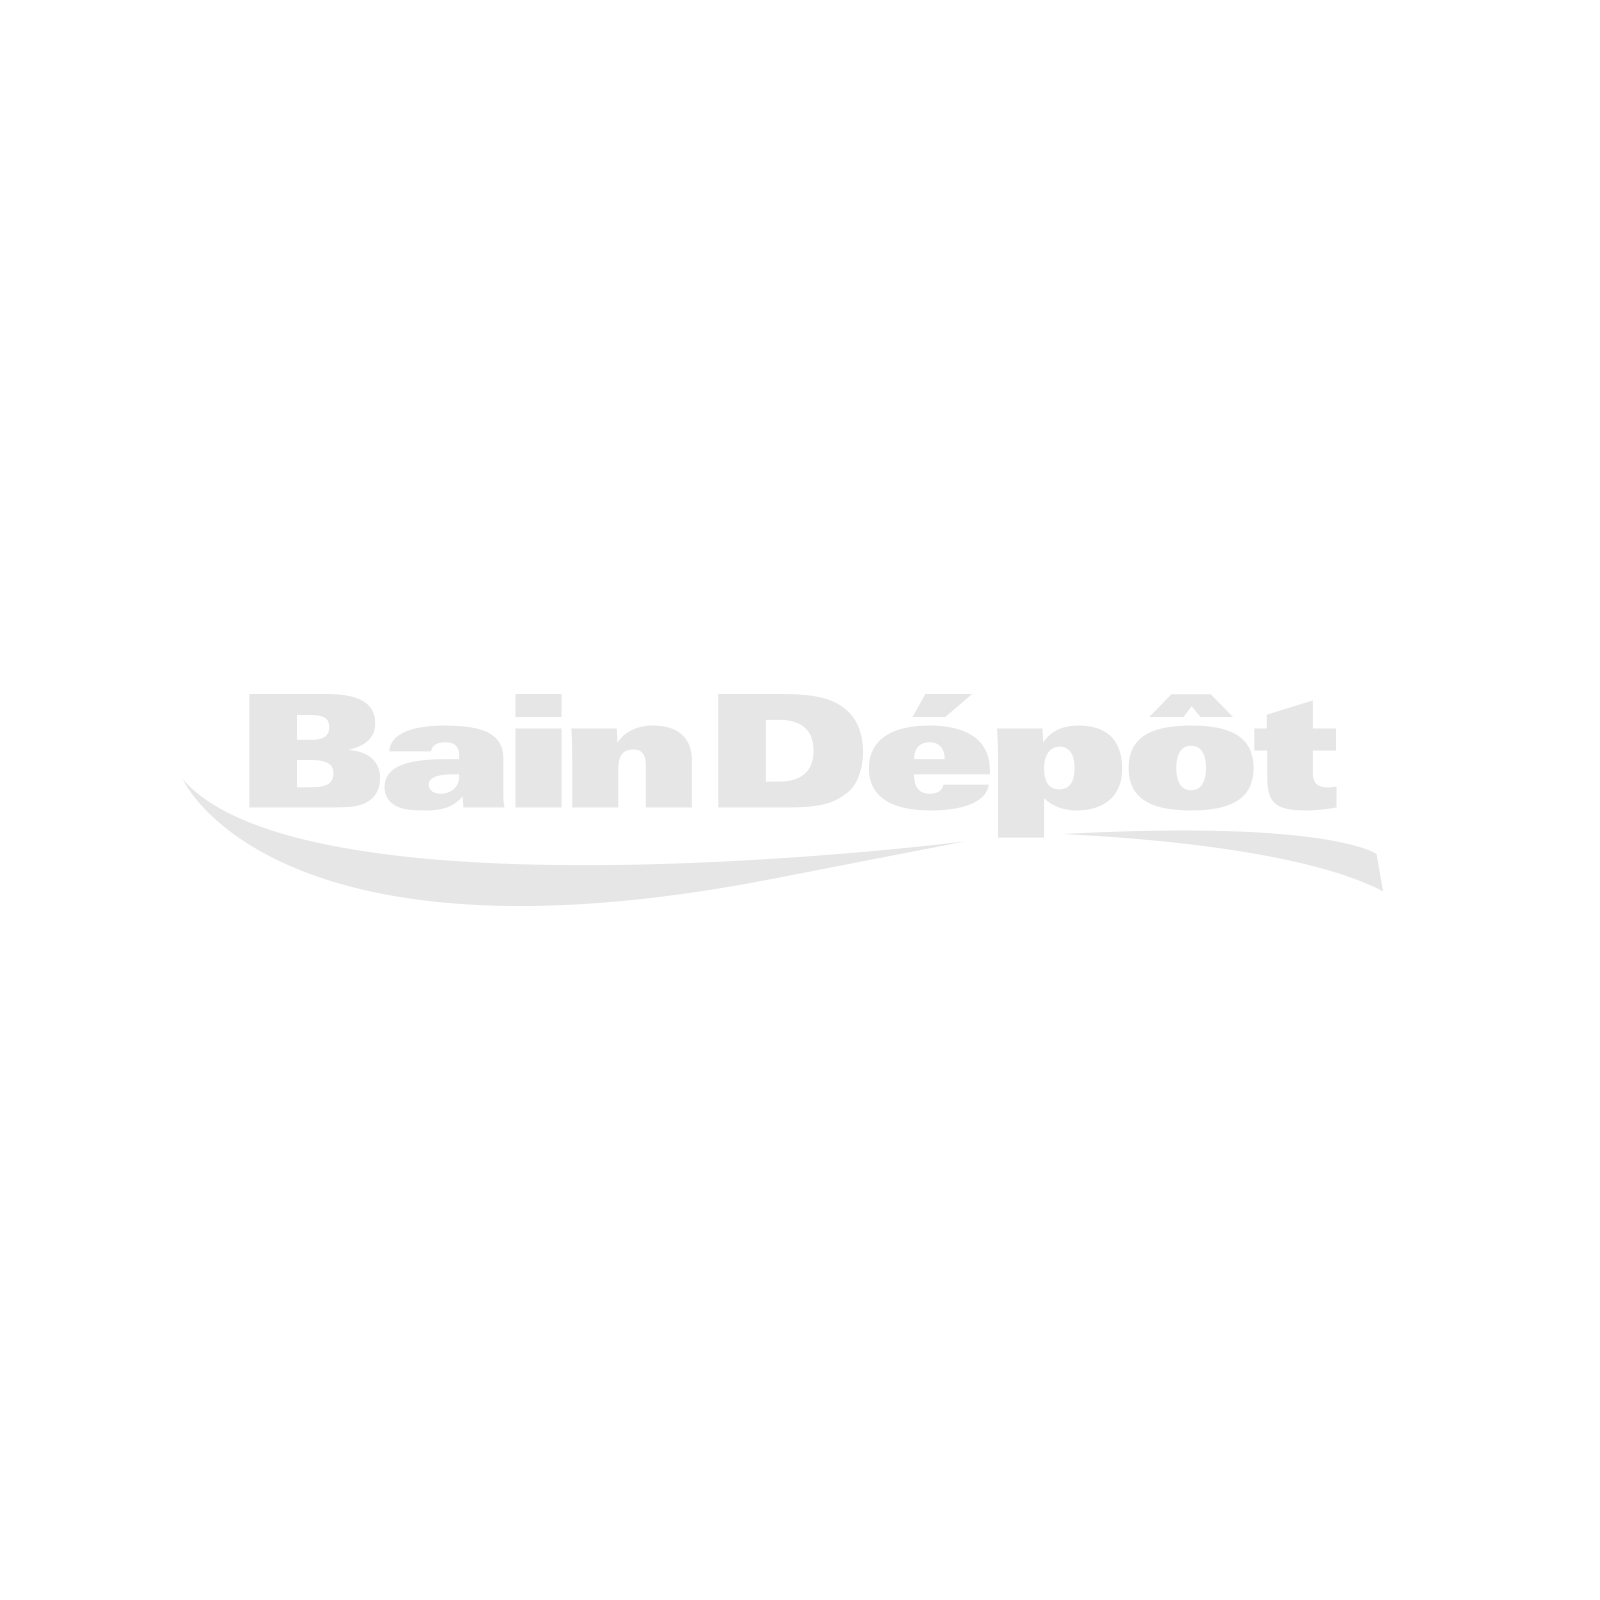 Lumawarm white heated toilet seat with nightlight for round bowl